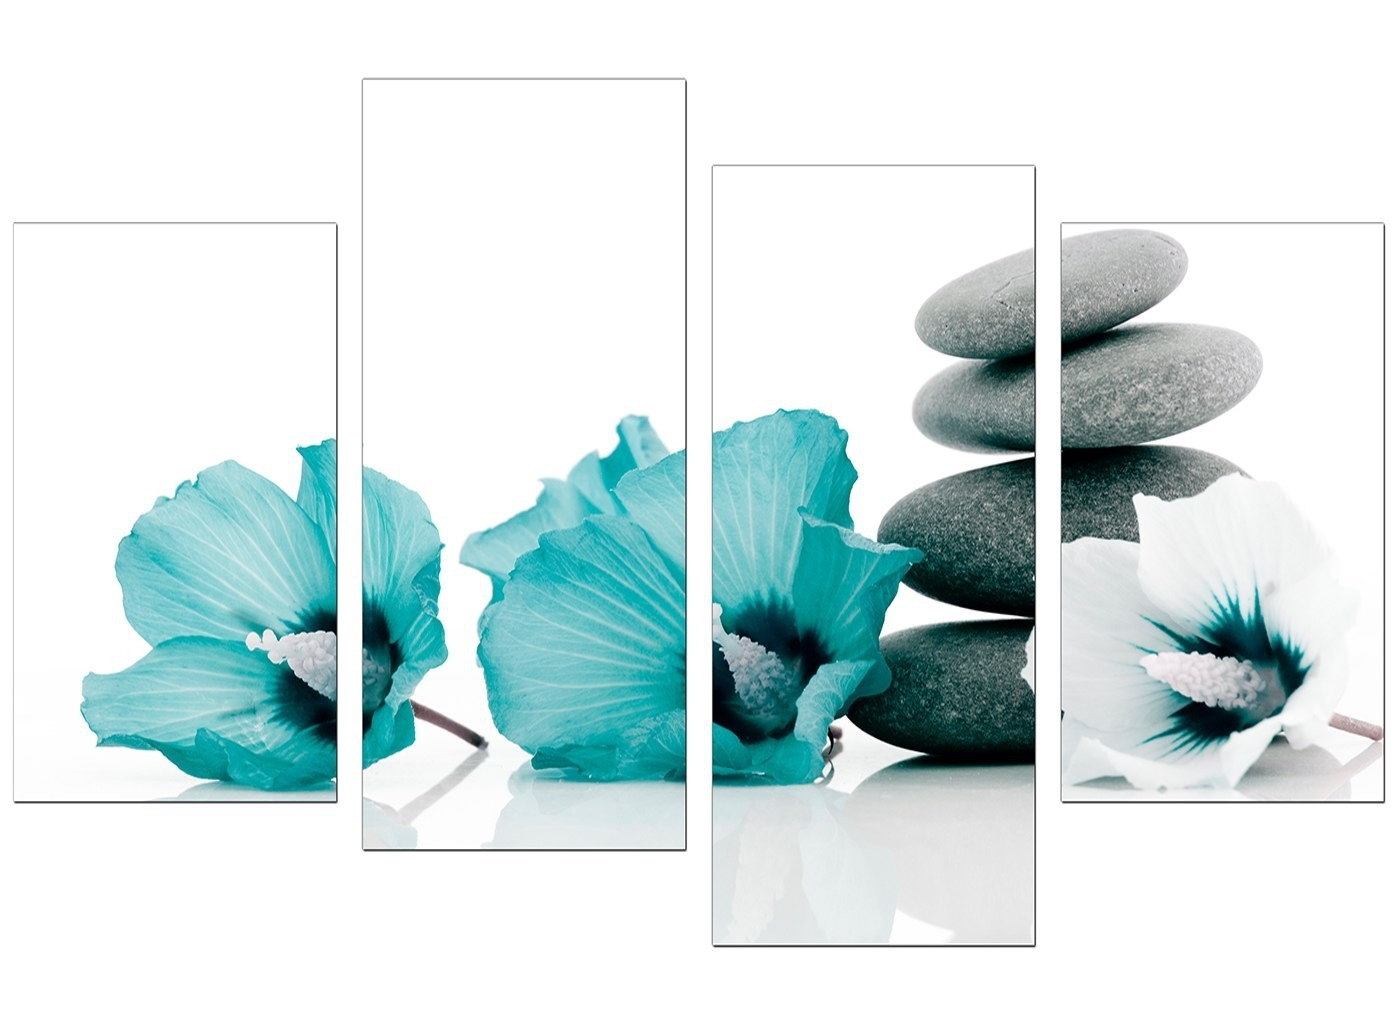 Canvas Wall Art Awesome Teal Wall Art – Wall Decoration Ideas Regarding Most Popular Teal Wall Art (View 3 of 15)